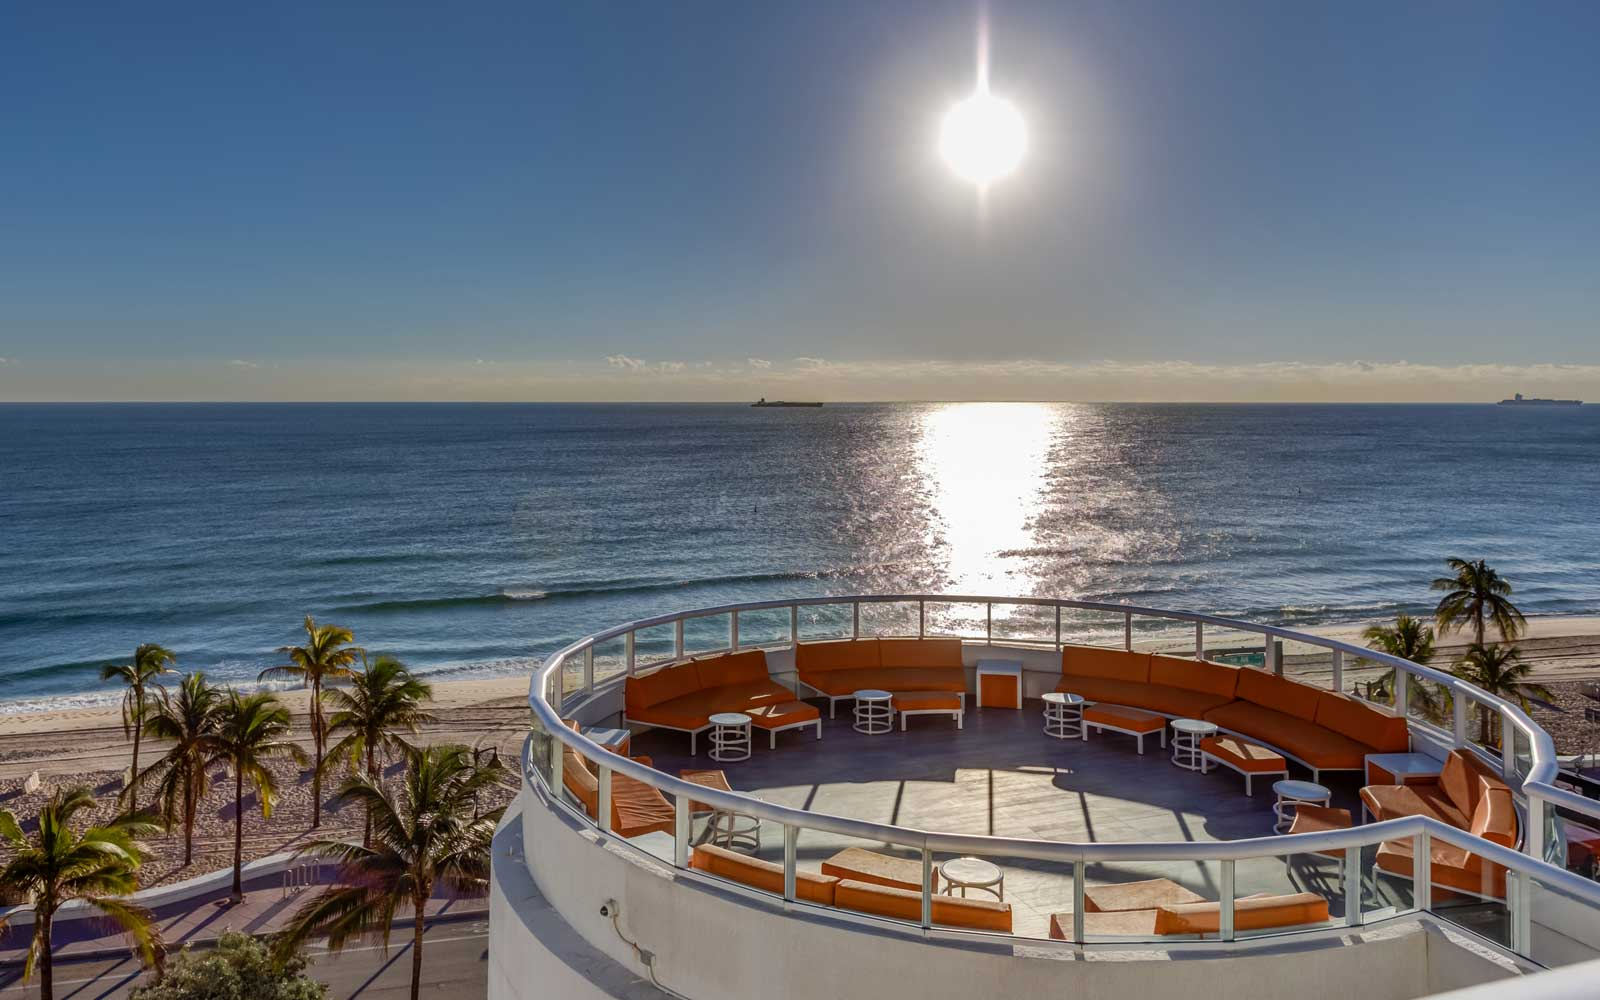 Save 30% on Stays at Hilton Fort Lauderdale Beach in Florida